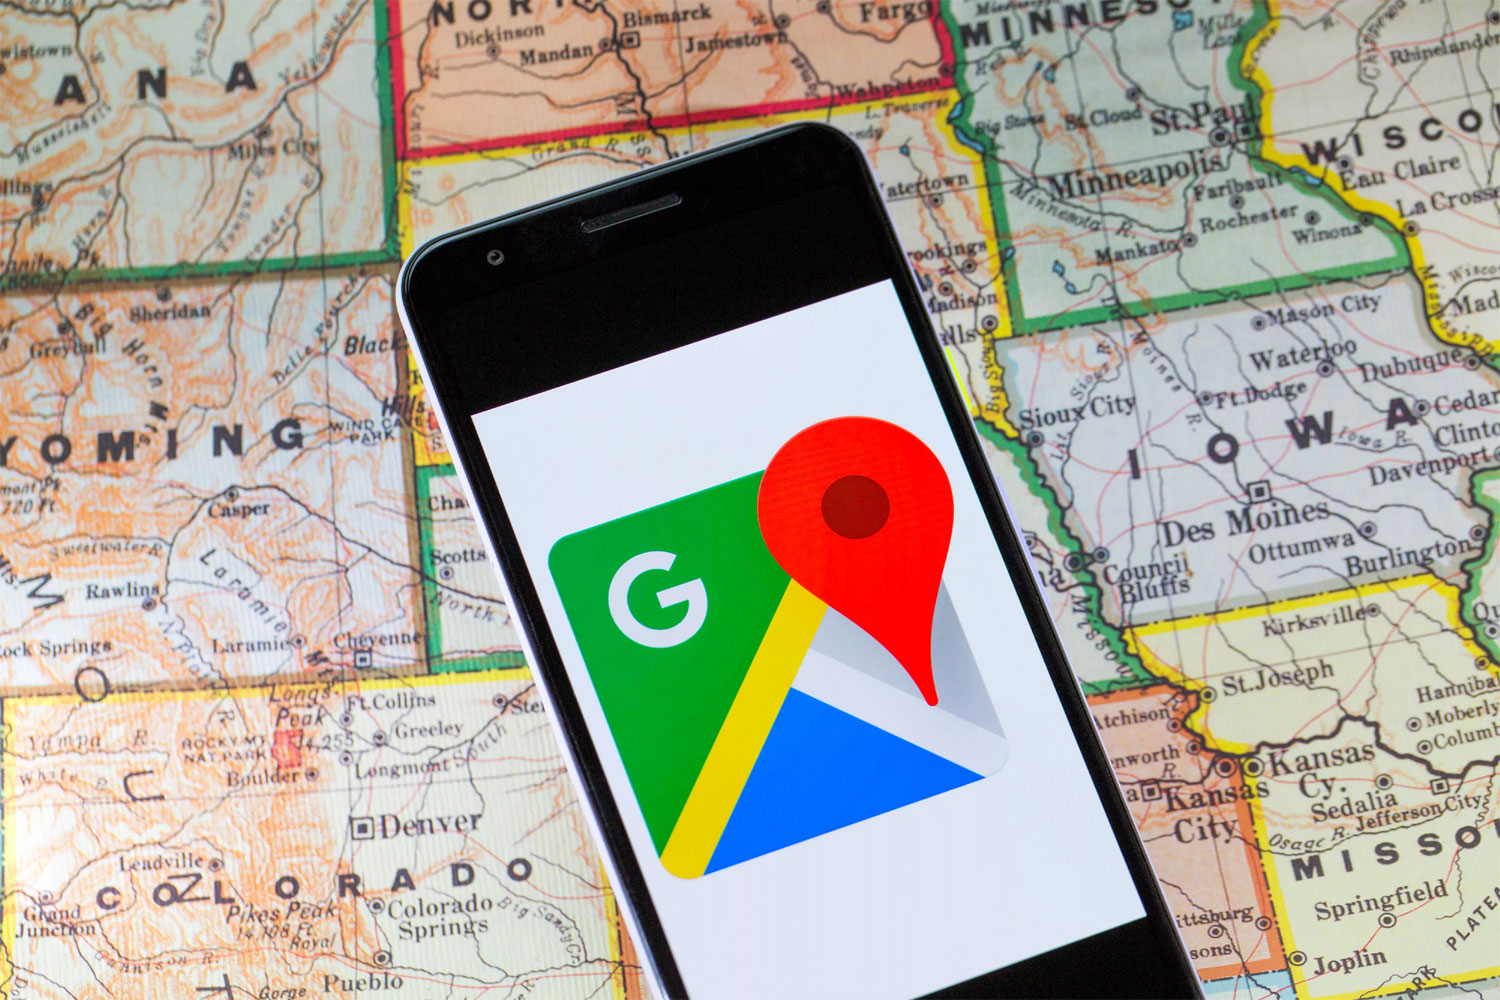 Field of dreams: Farmer's big proposal makes it on to Google Maps